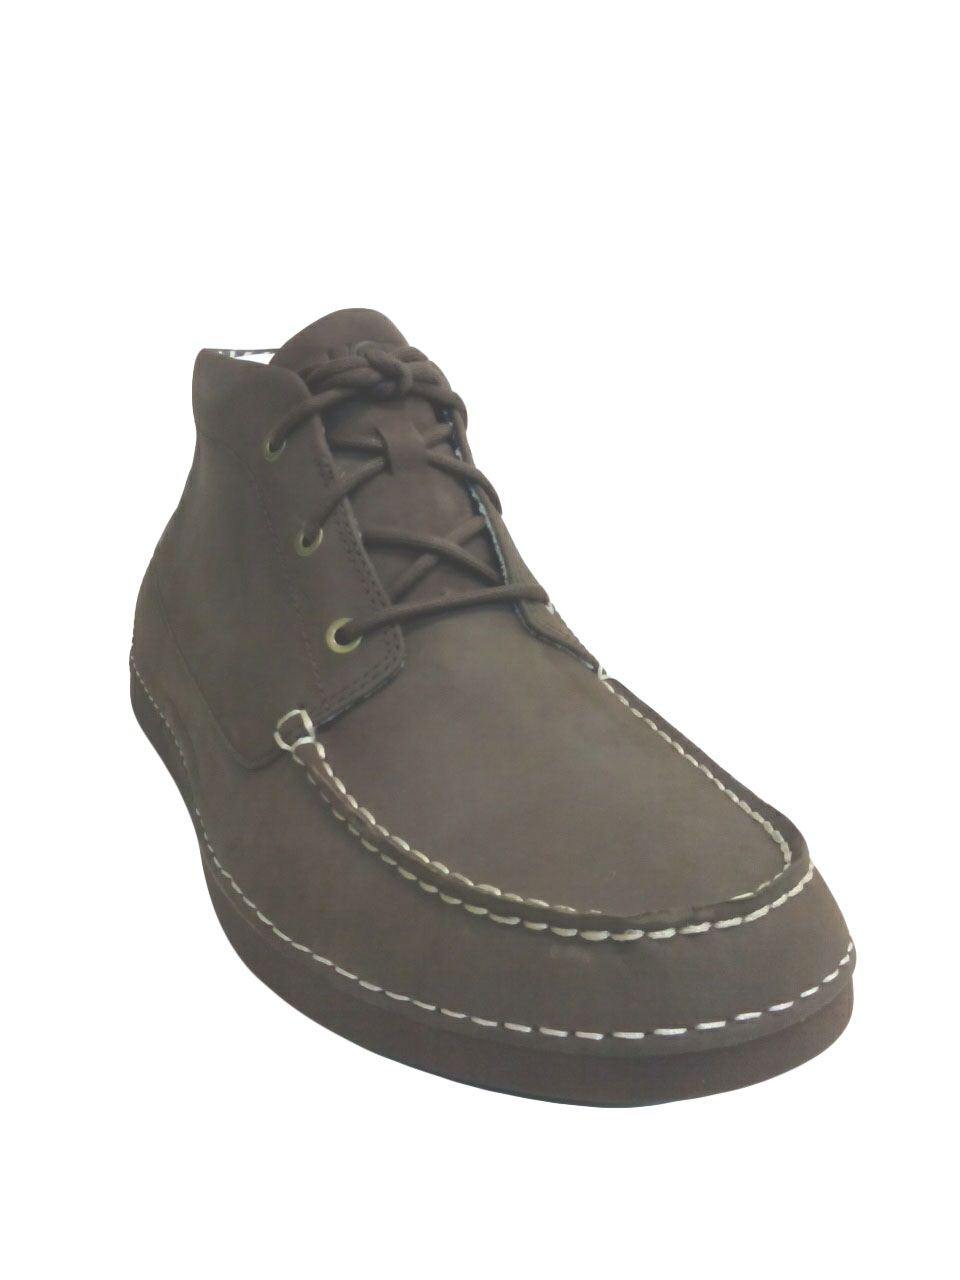 3d0090b1403 Ugg Australia Kaldwell Chukka Boots - cheap watches mgc-gas.com